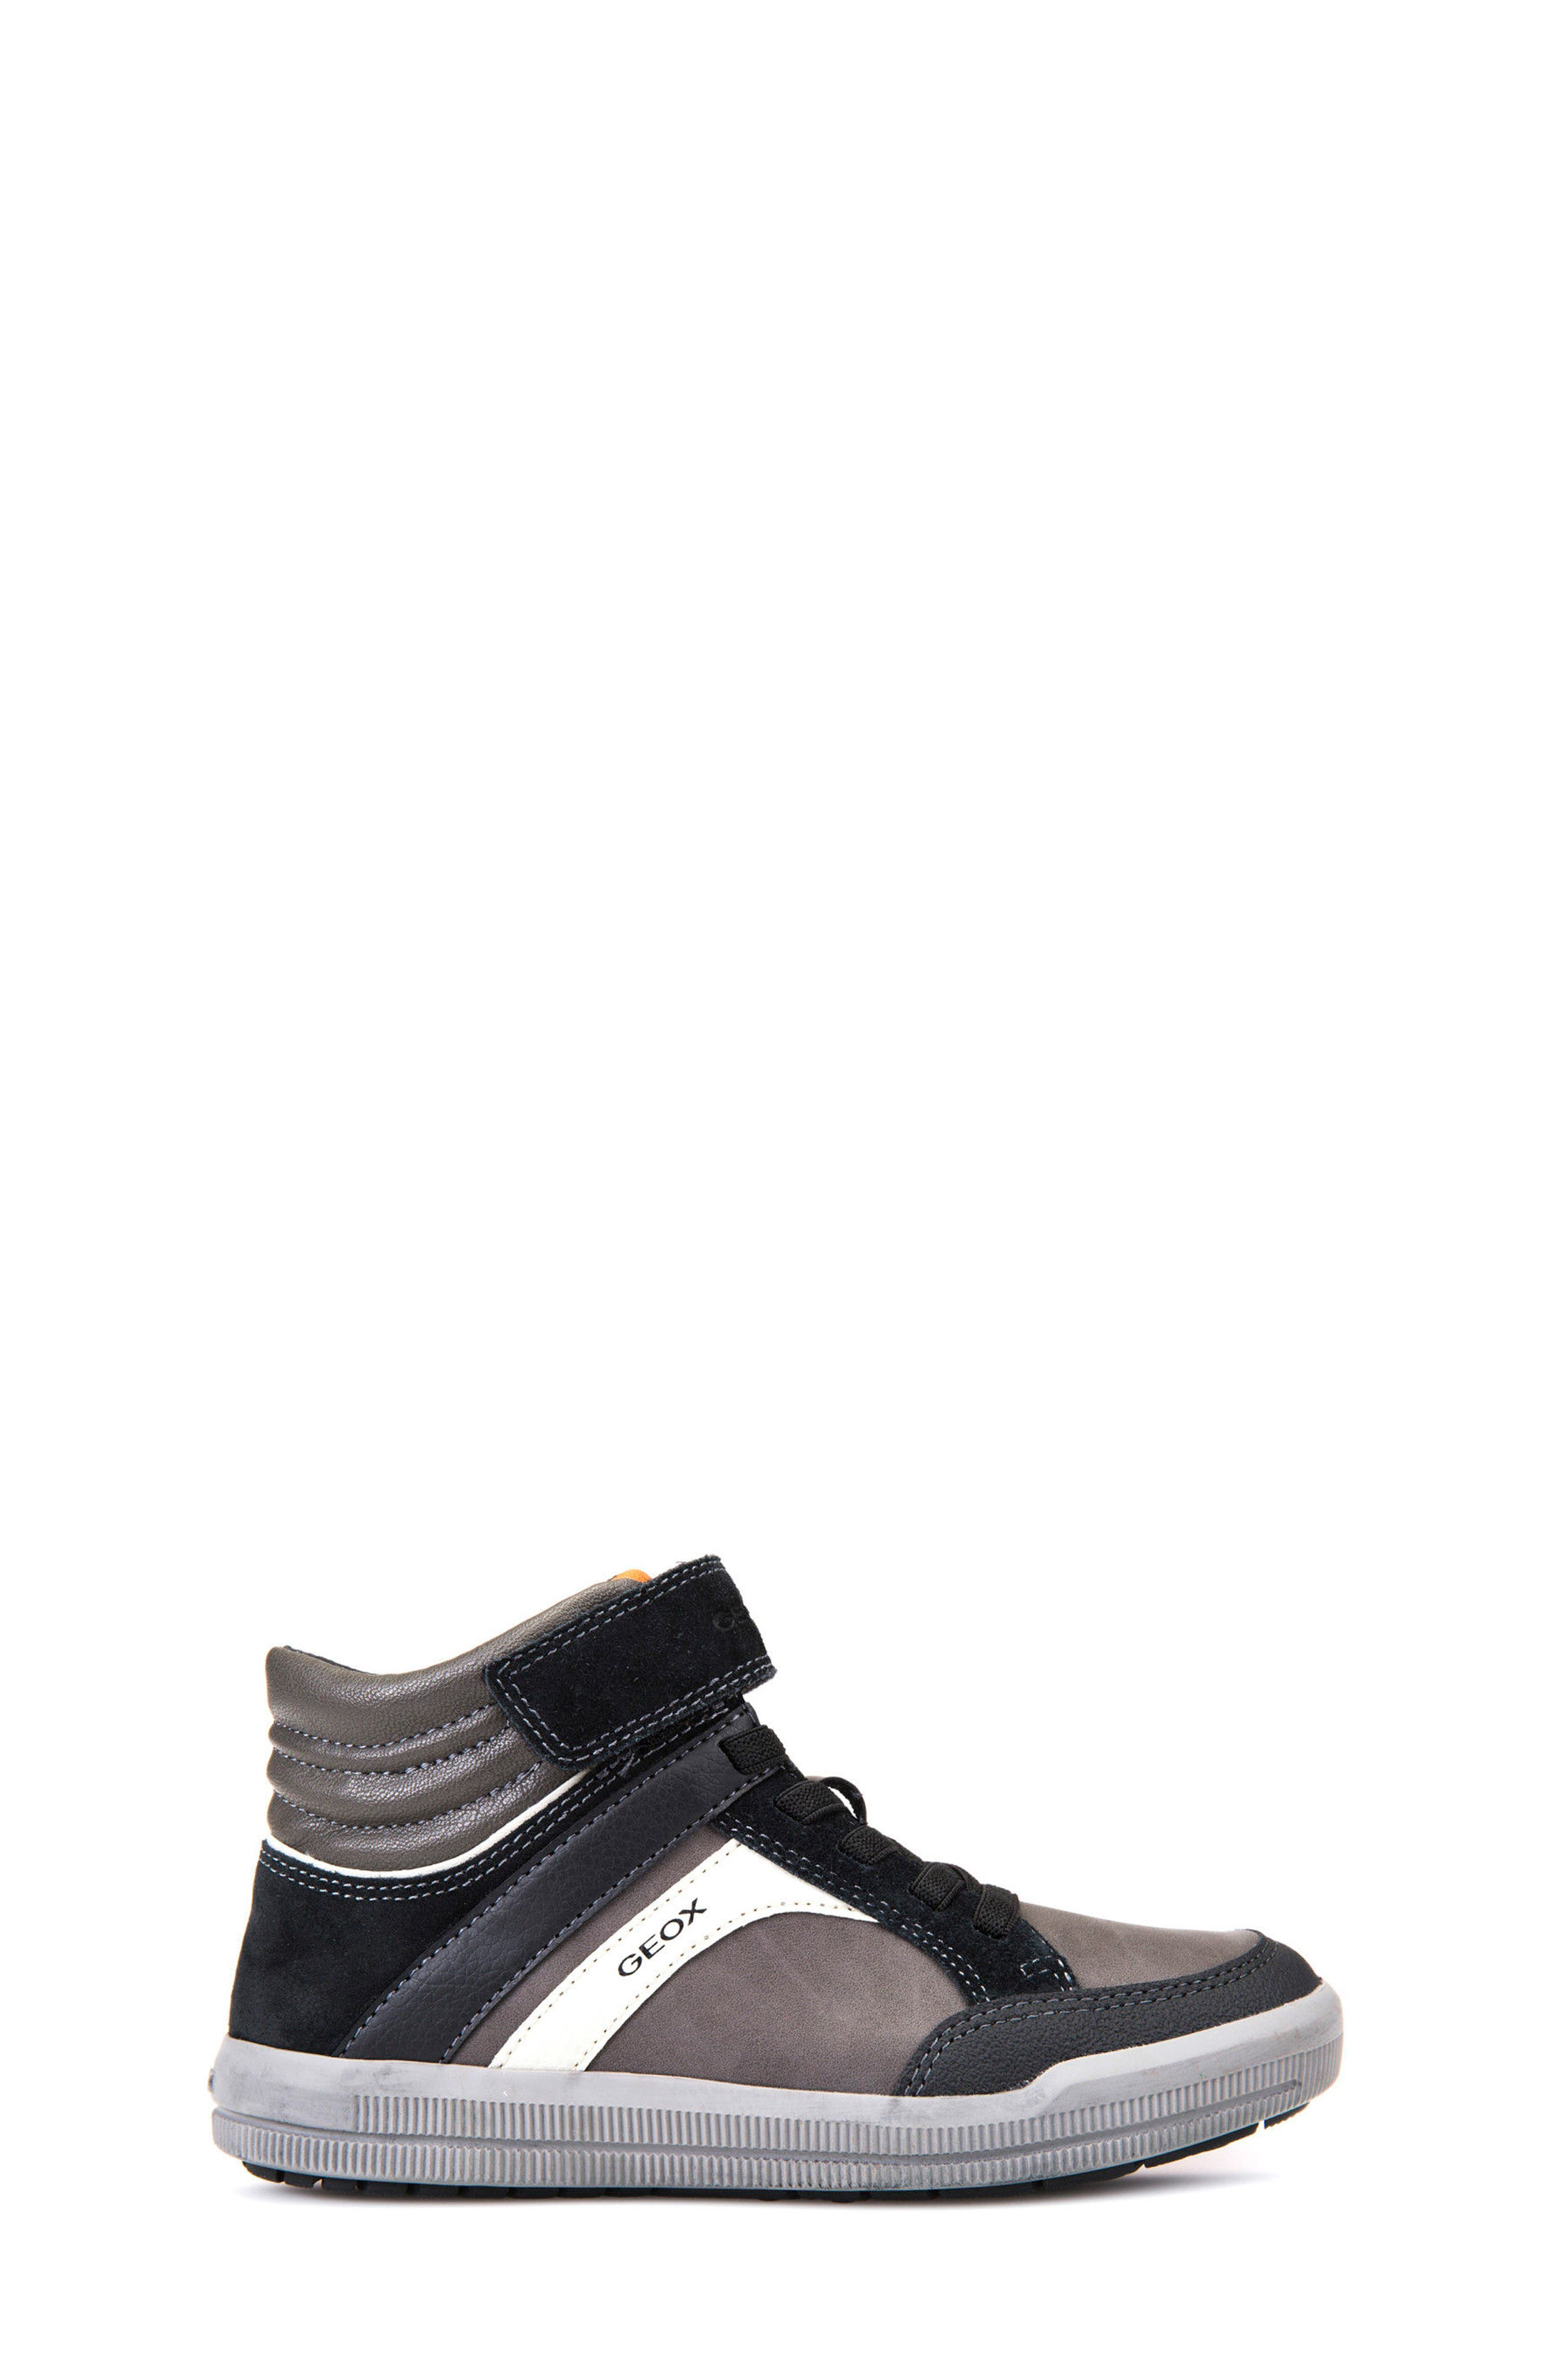 Arzach Mid Top Sneaker,                             Alternate thumbnail 3, color,                             001